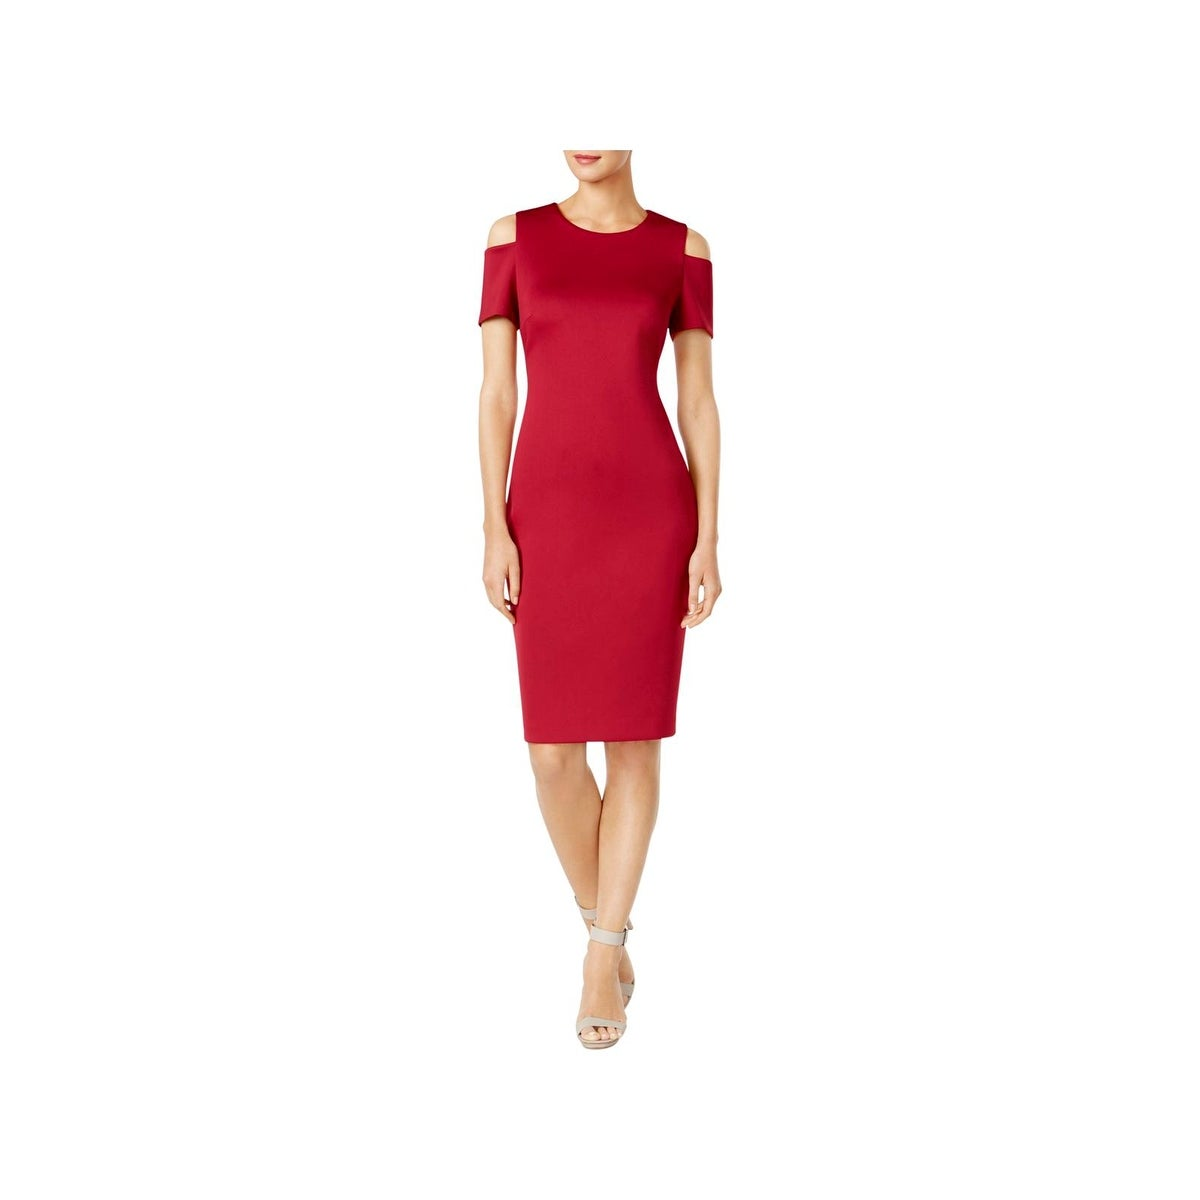 ac44fa12 Calvin Klein Dresses   Find Great Women's Clothing Deals Shopping at  Overstock